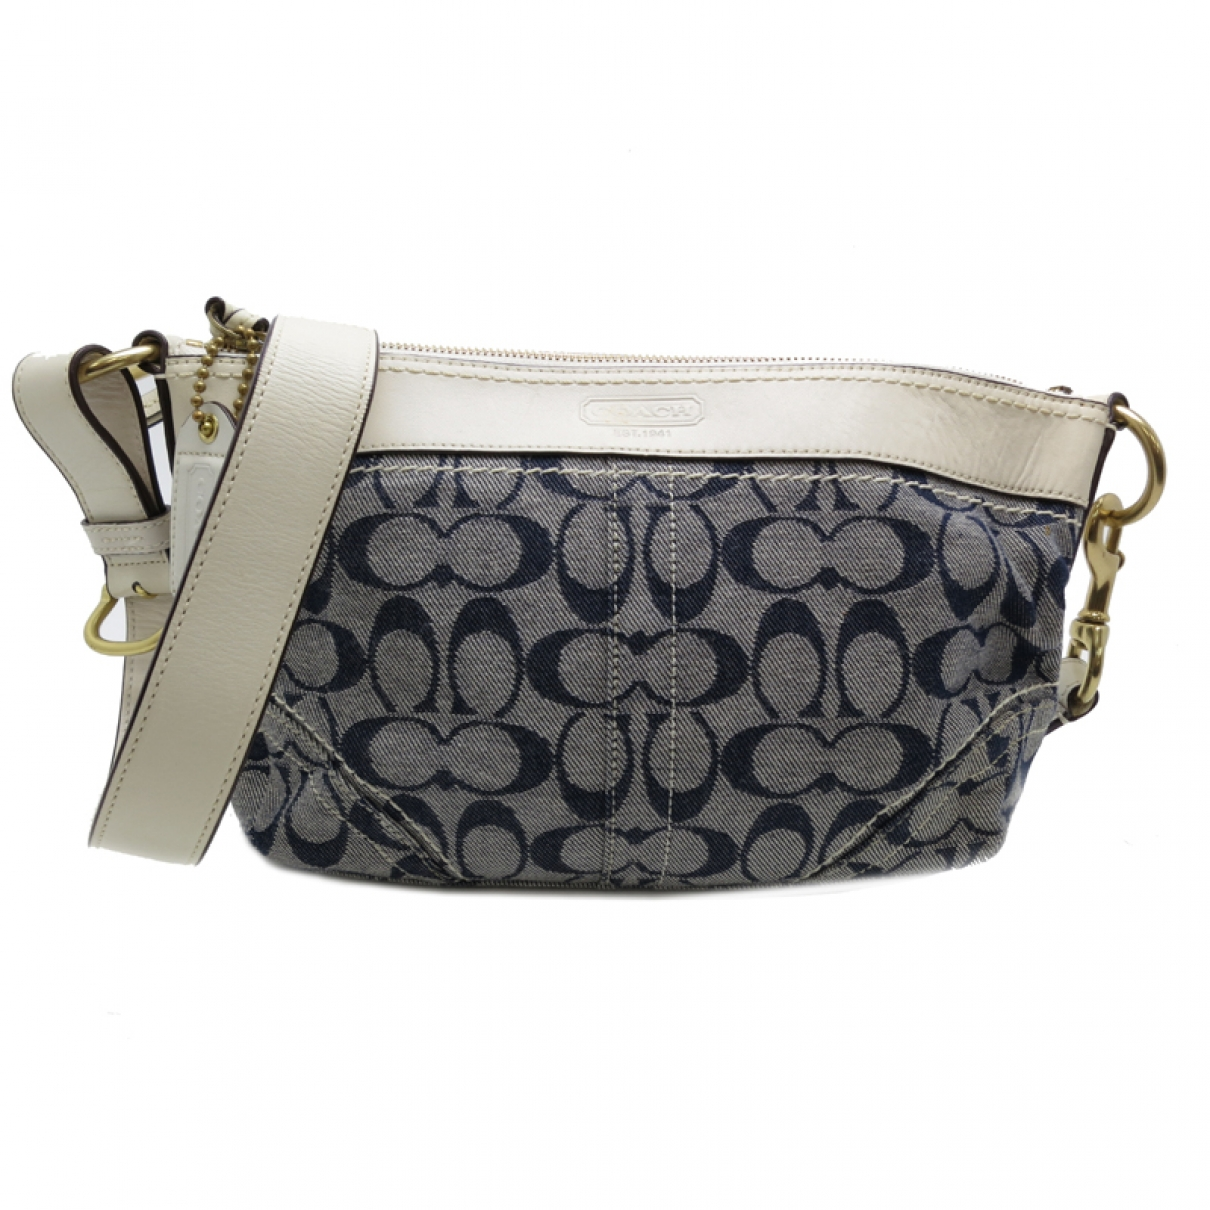 Coach \N Ecru Cloth handbag for Women \N